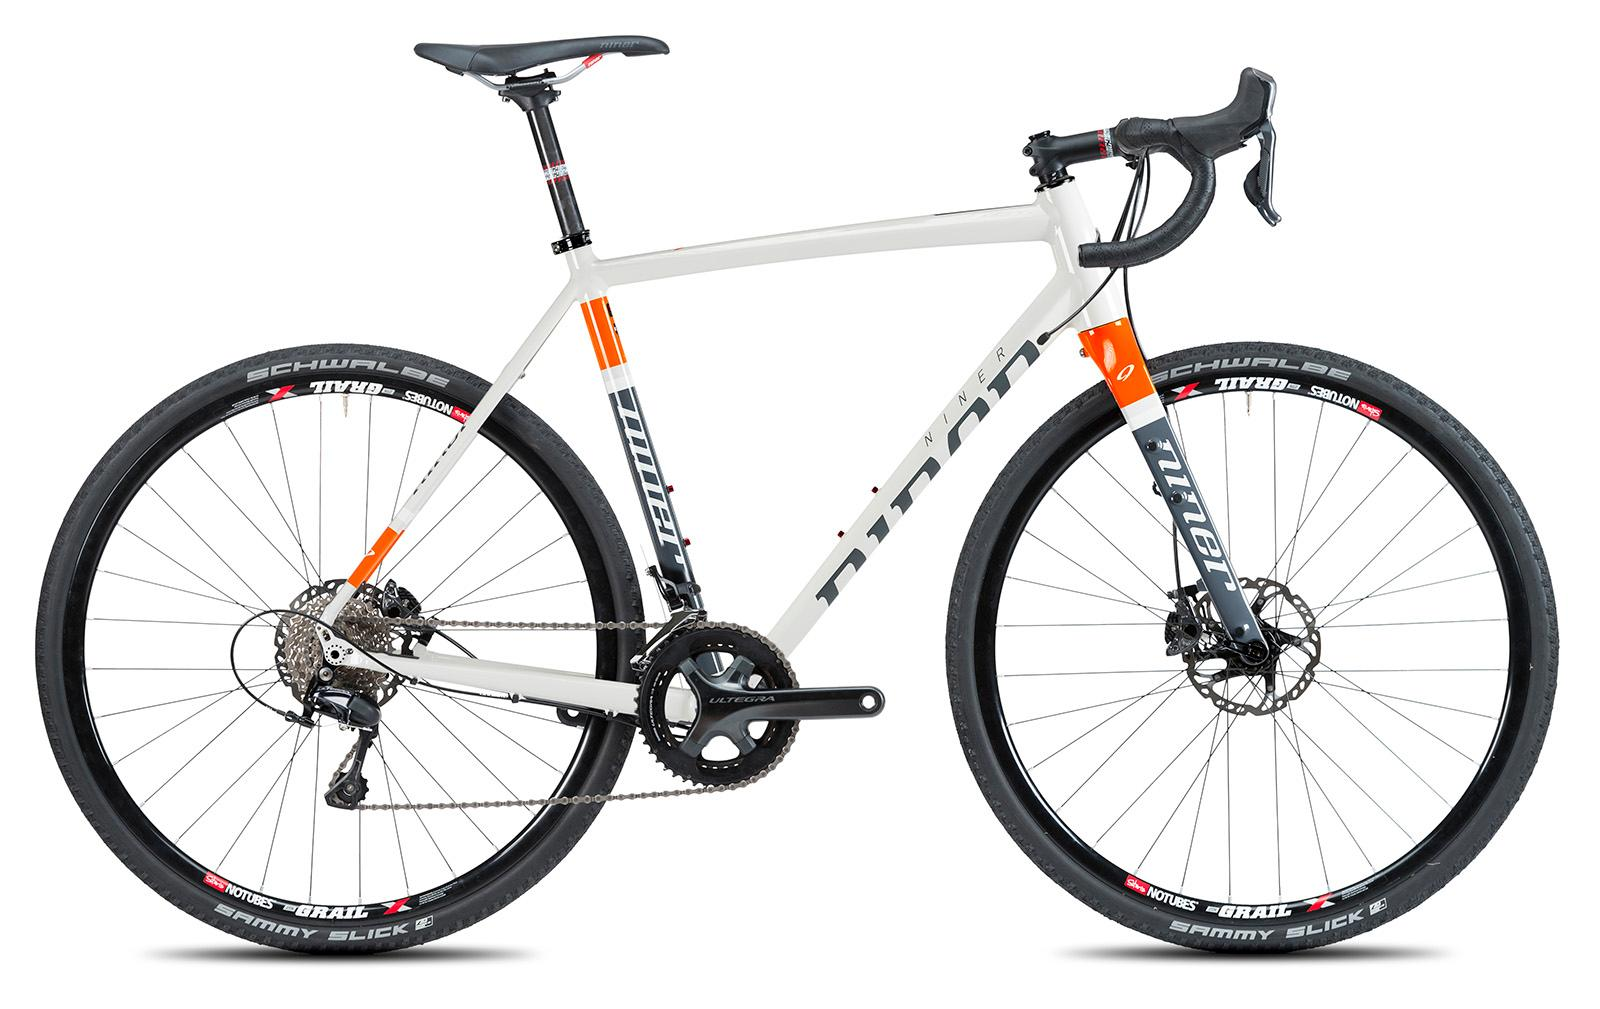 RLT9_4star_Ultegra_Orange